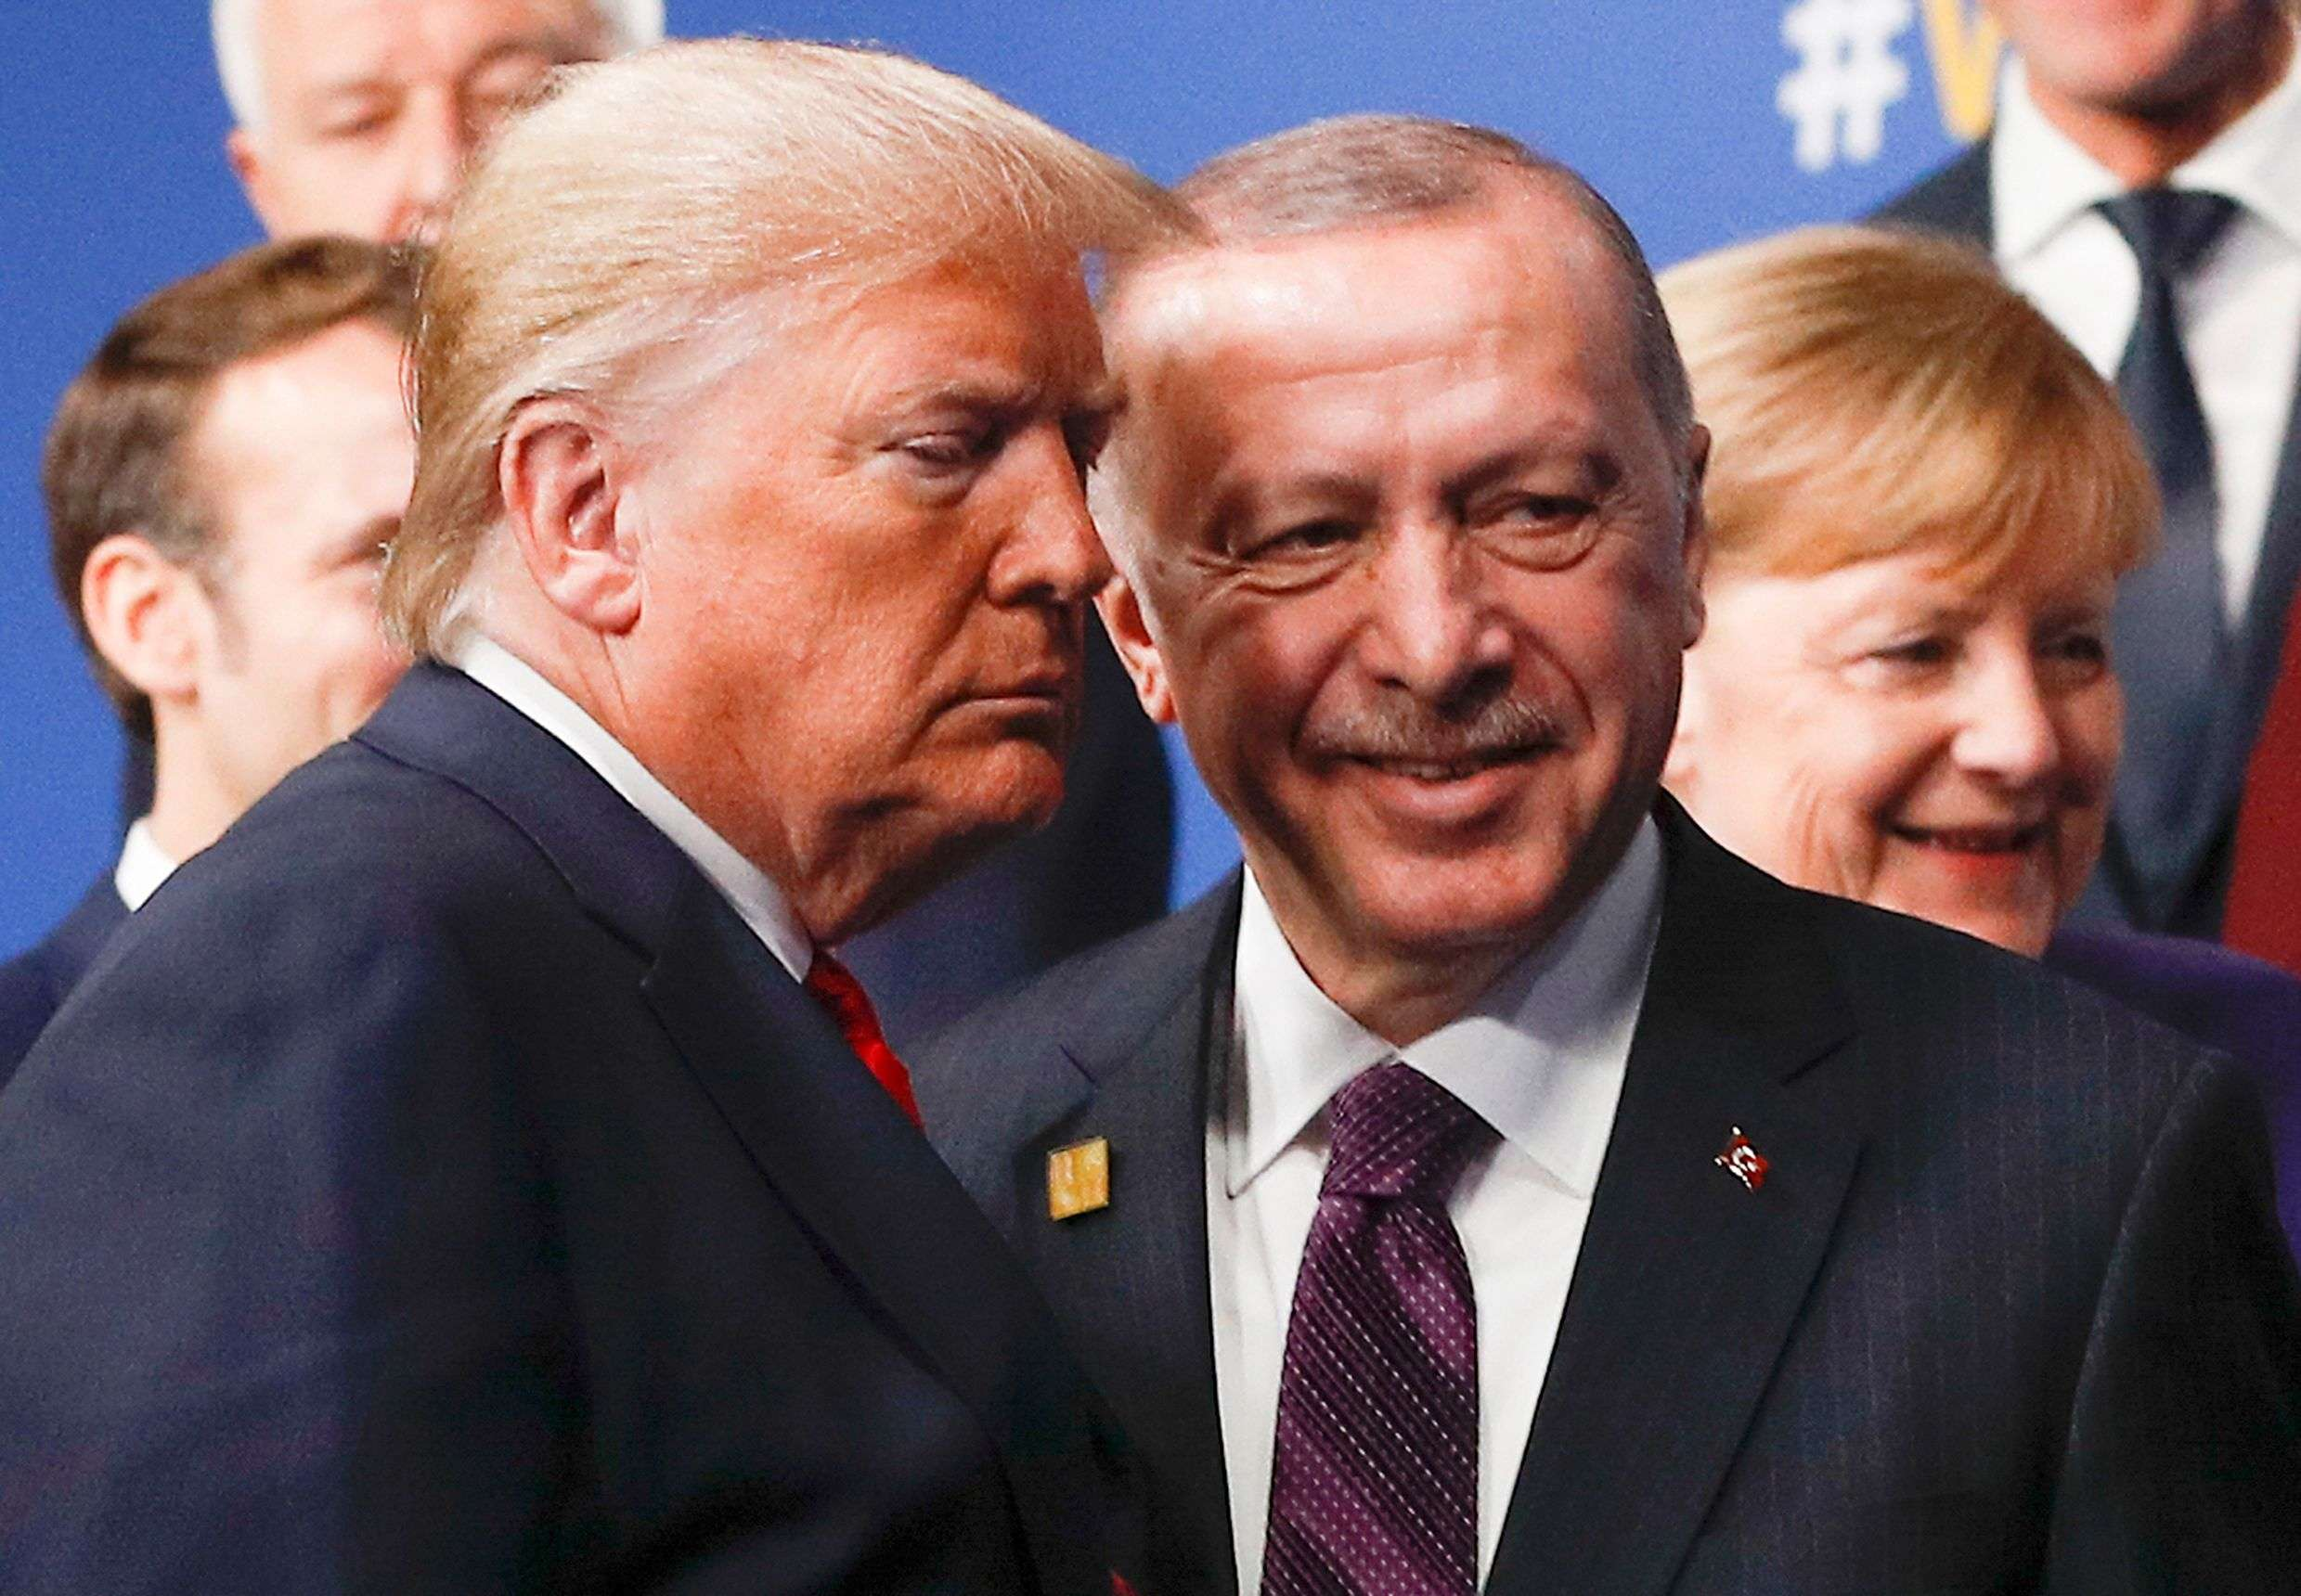 In this file photo taken on December 4, 2019 US President Donald Trump (L) and Turkey's President Recep Tayyip Erdogan leave the stage after the family photo to head to the plenary session at the NATO summit at the Grove hotel in Watford, London. (AFP)